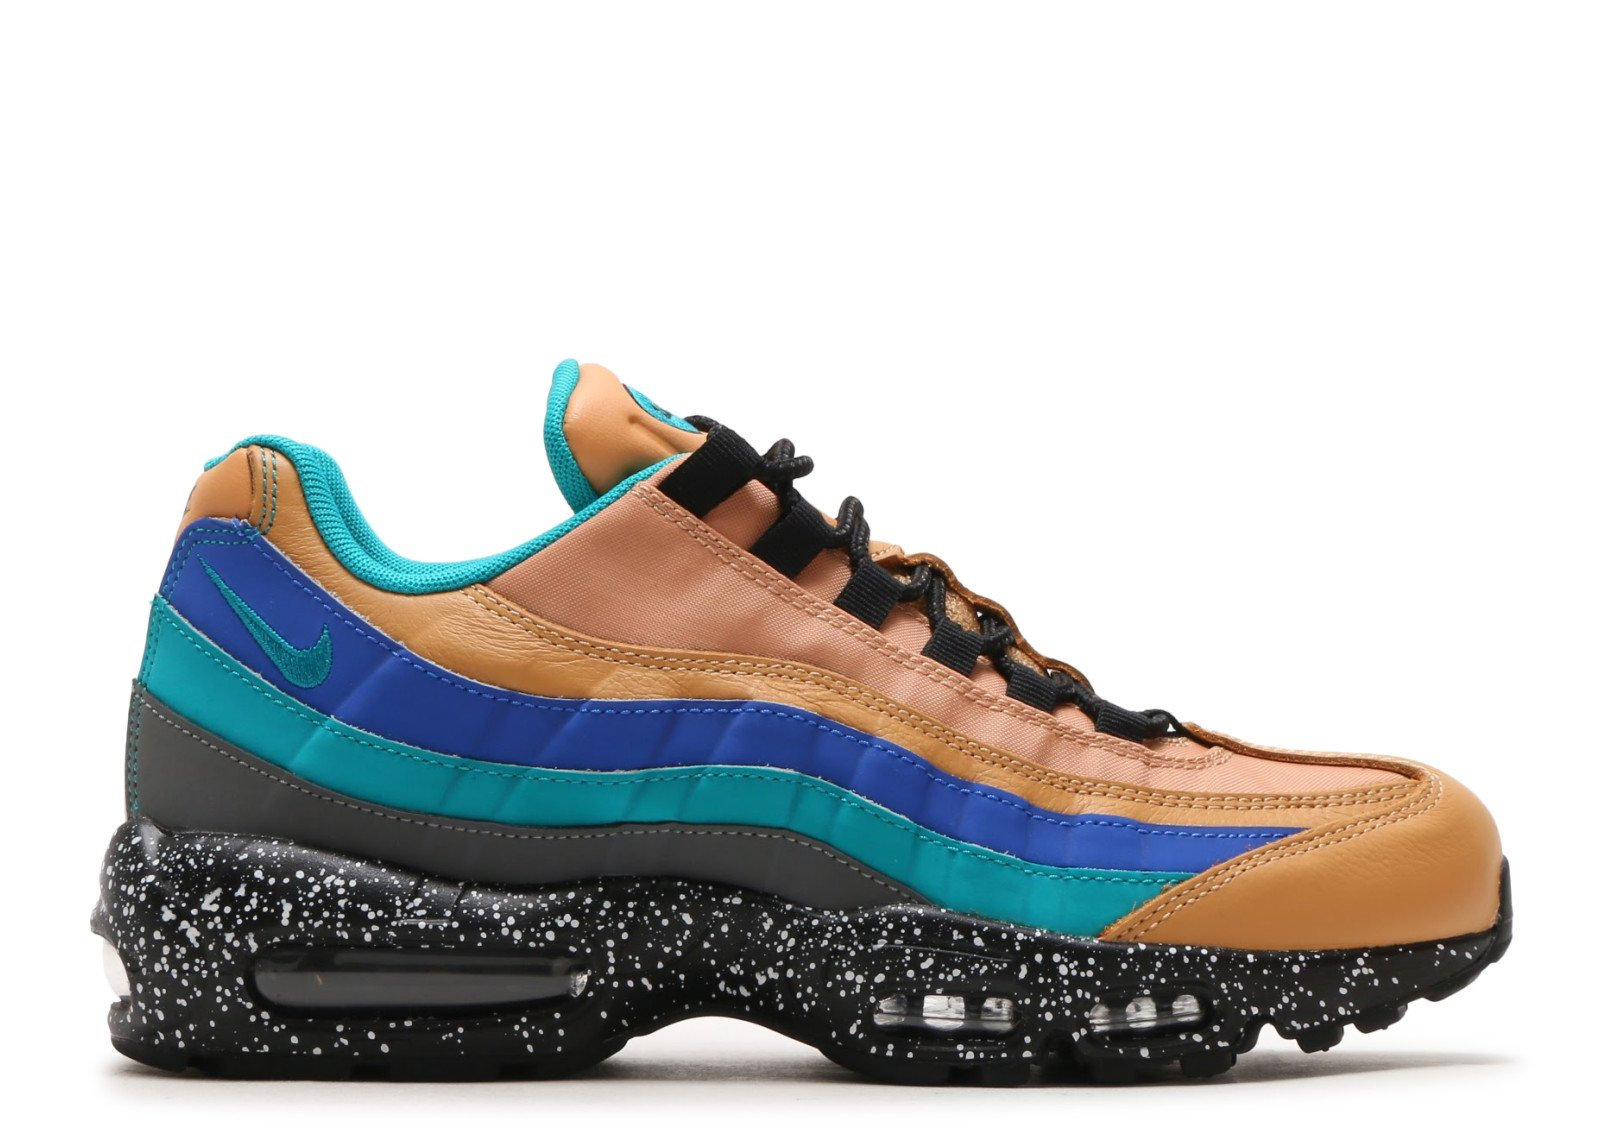 official photos e737f cf60d ... new zealand nike mens nike air max 95 premium praline turbo green cool  grey mega blue